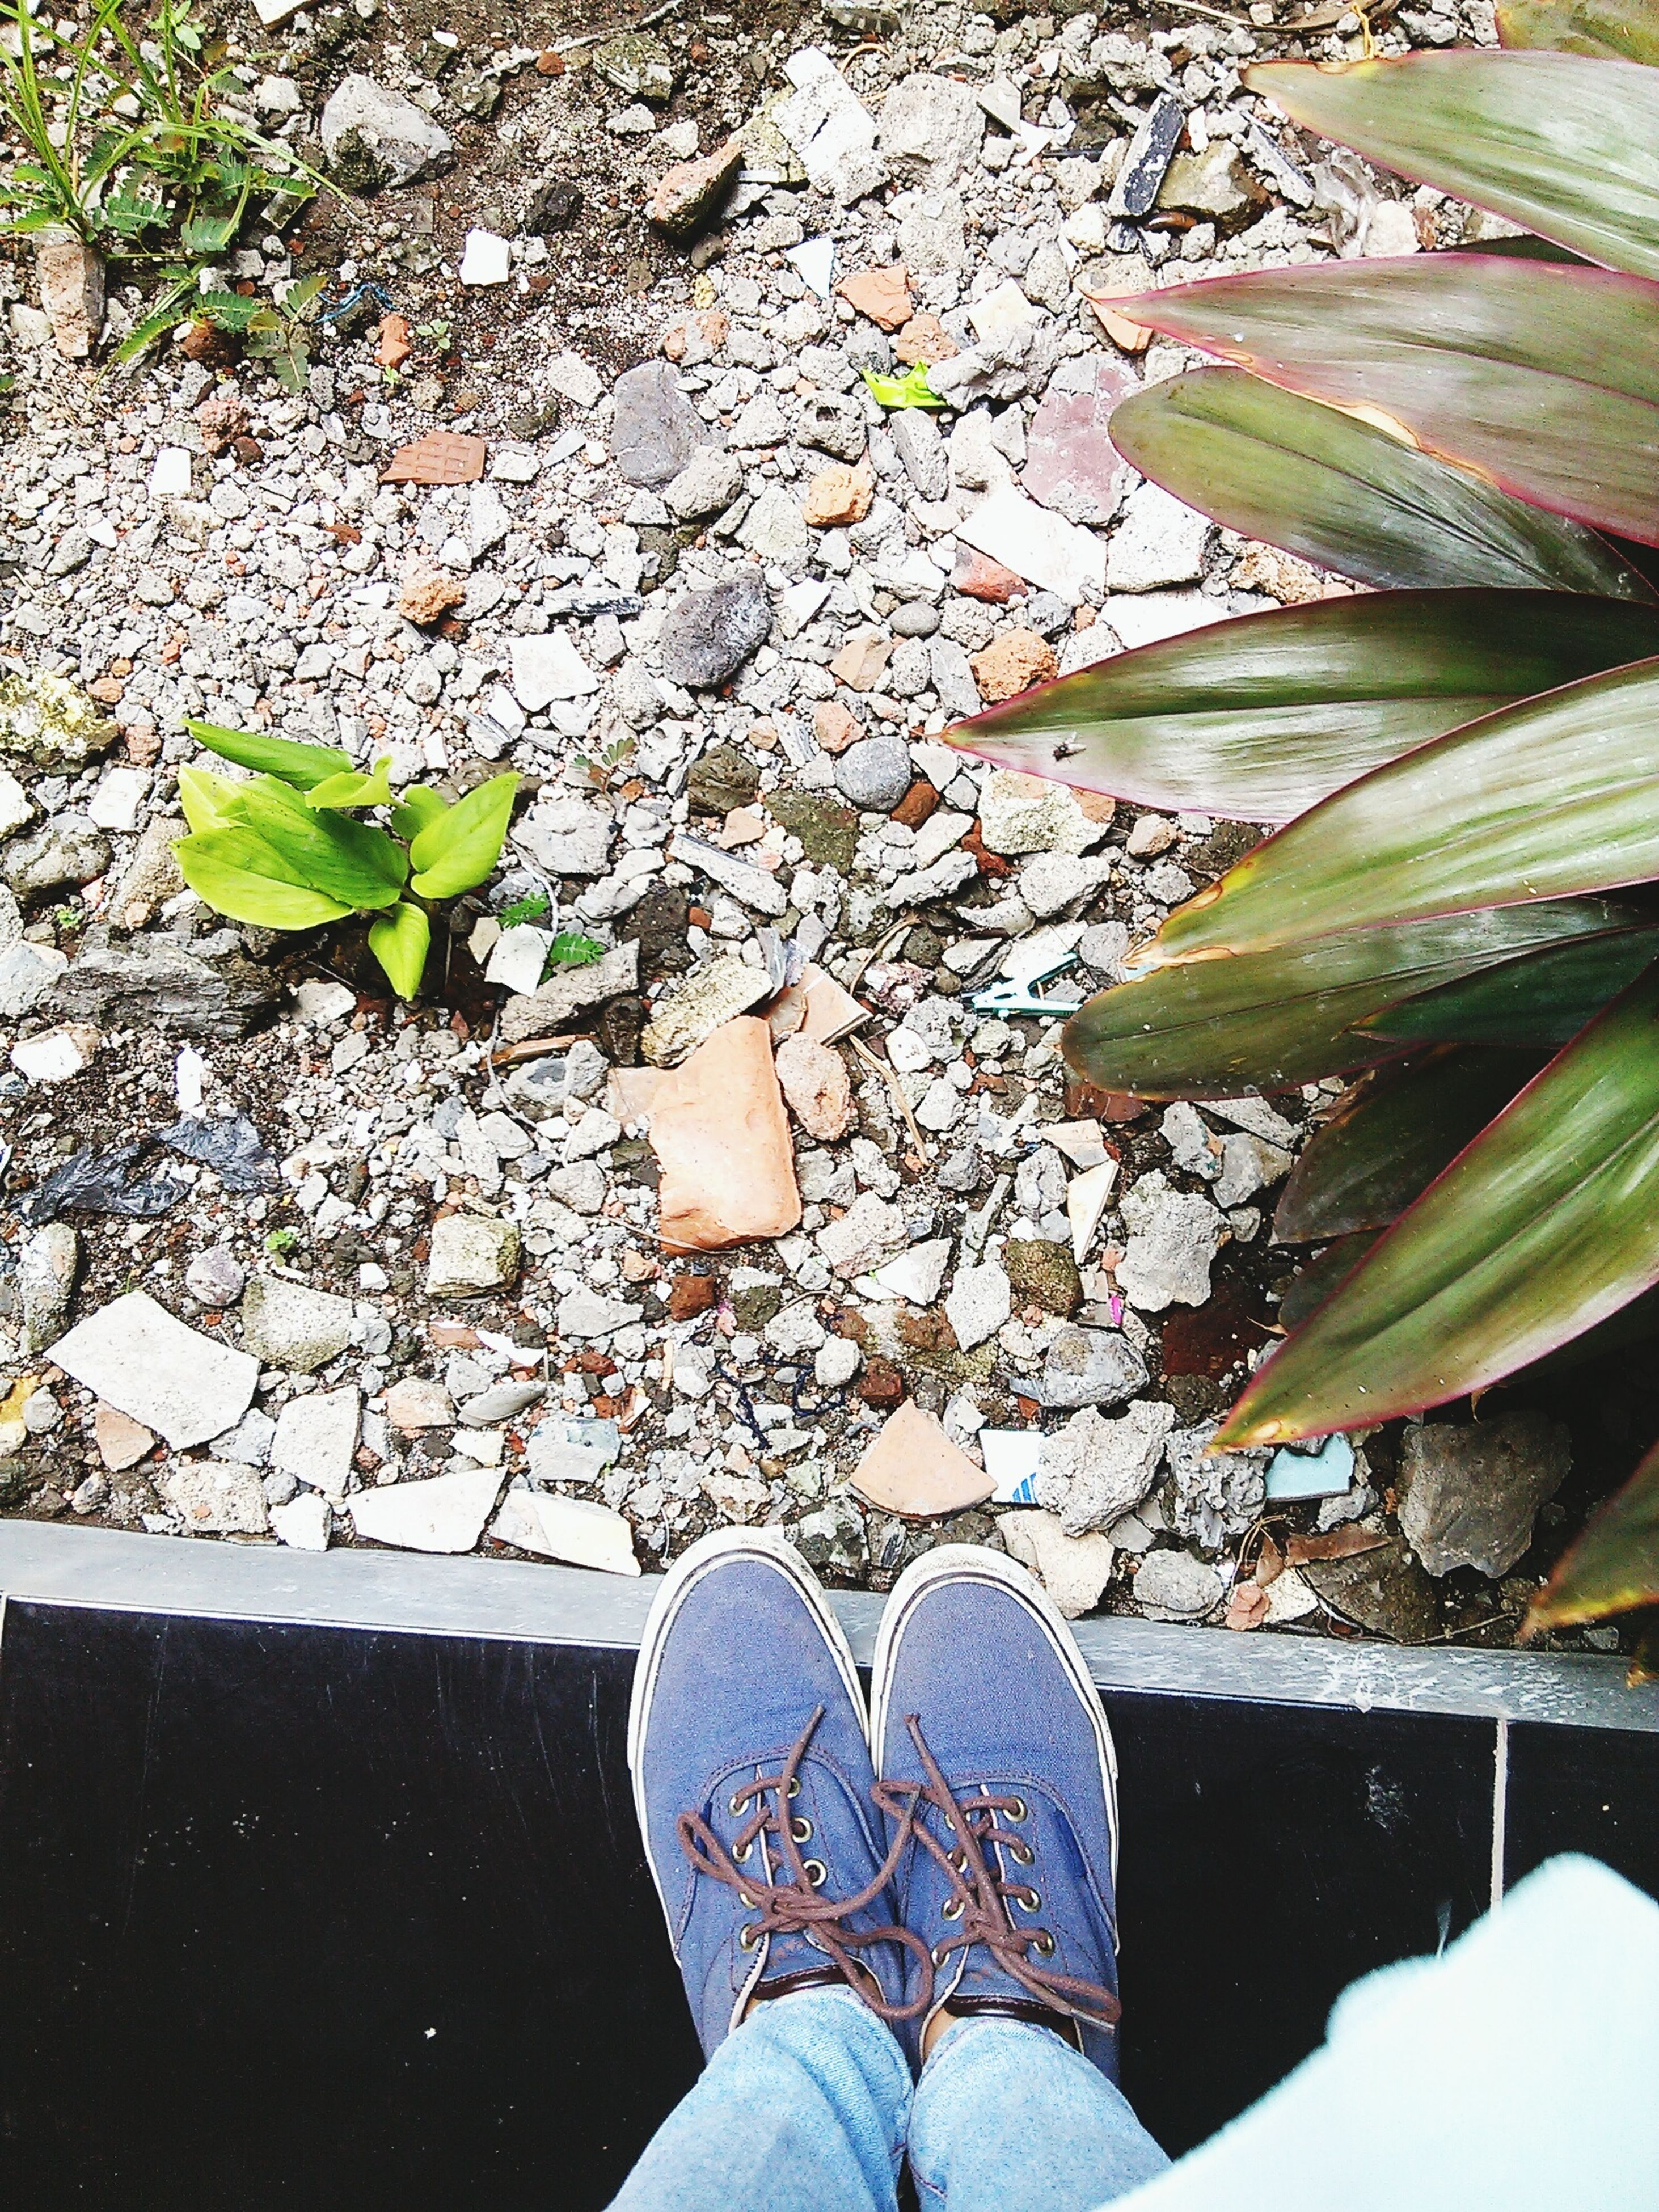 low section, leaf, person, high angle view, water, personal perspective, standing, shoe, plant, nature, leaves, day, outdoors, human foot, reflection, season, lifestyles